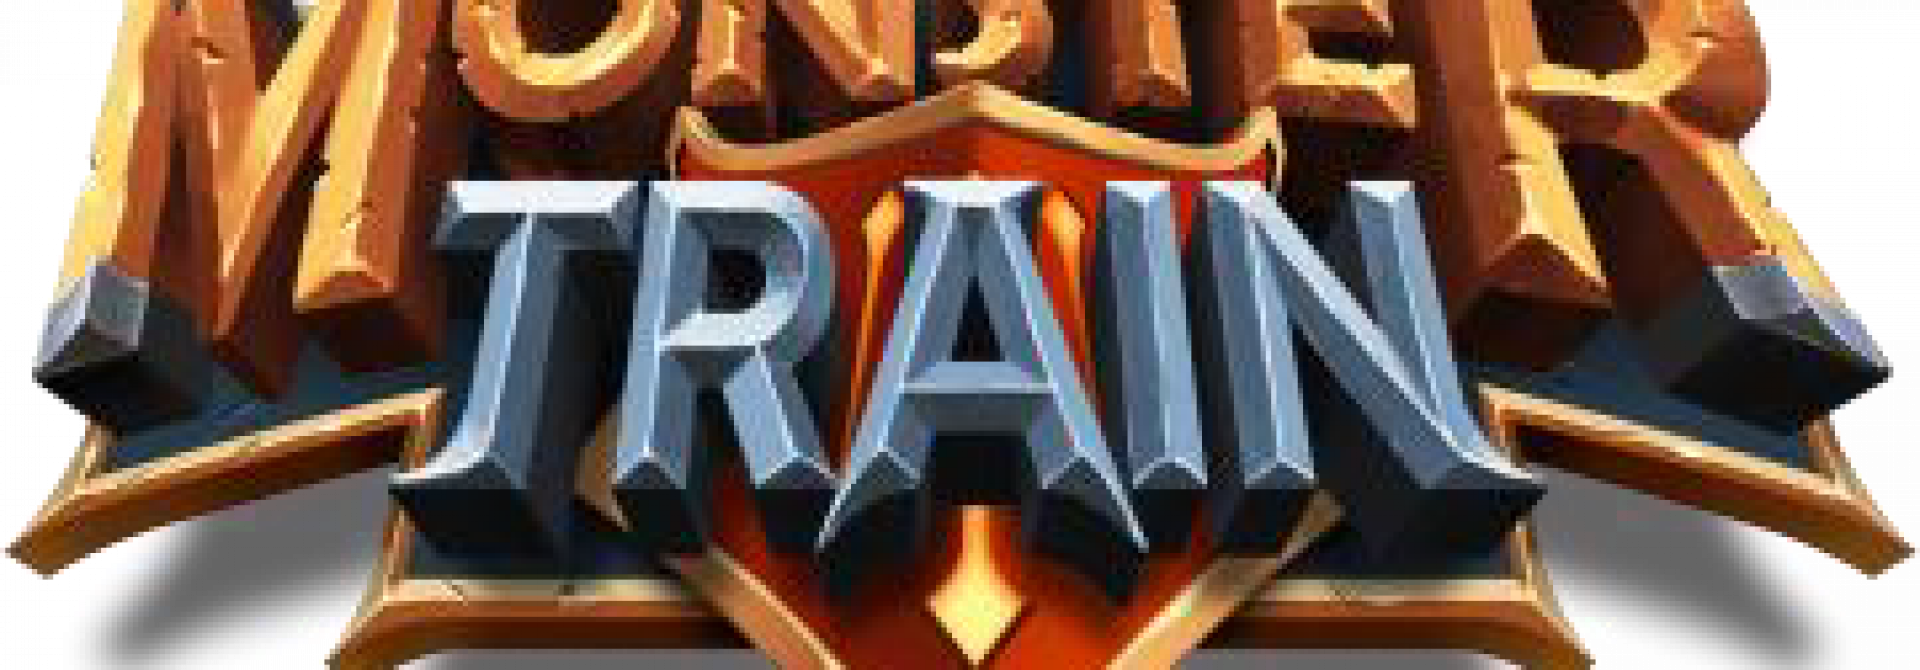 Good Shepherd Reveals 'Monster Train,' A Roguelike Deck-Building Game (PC)